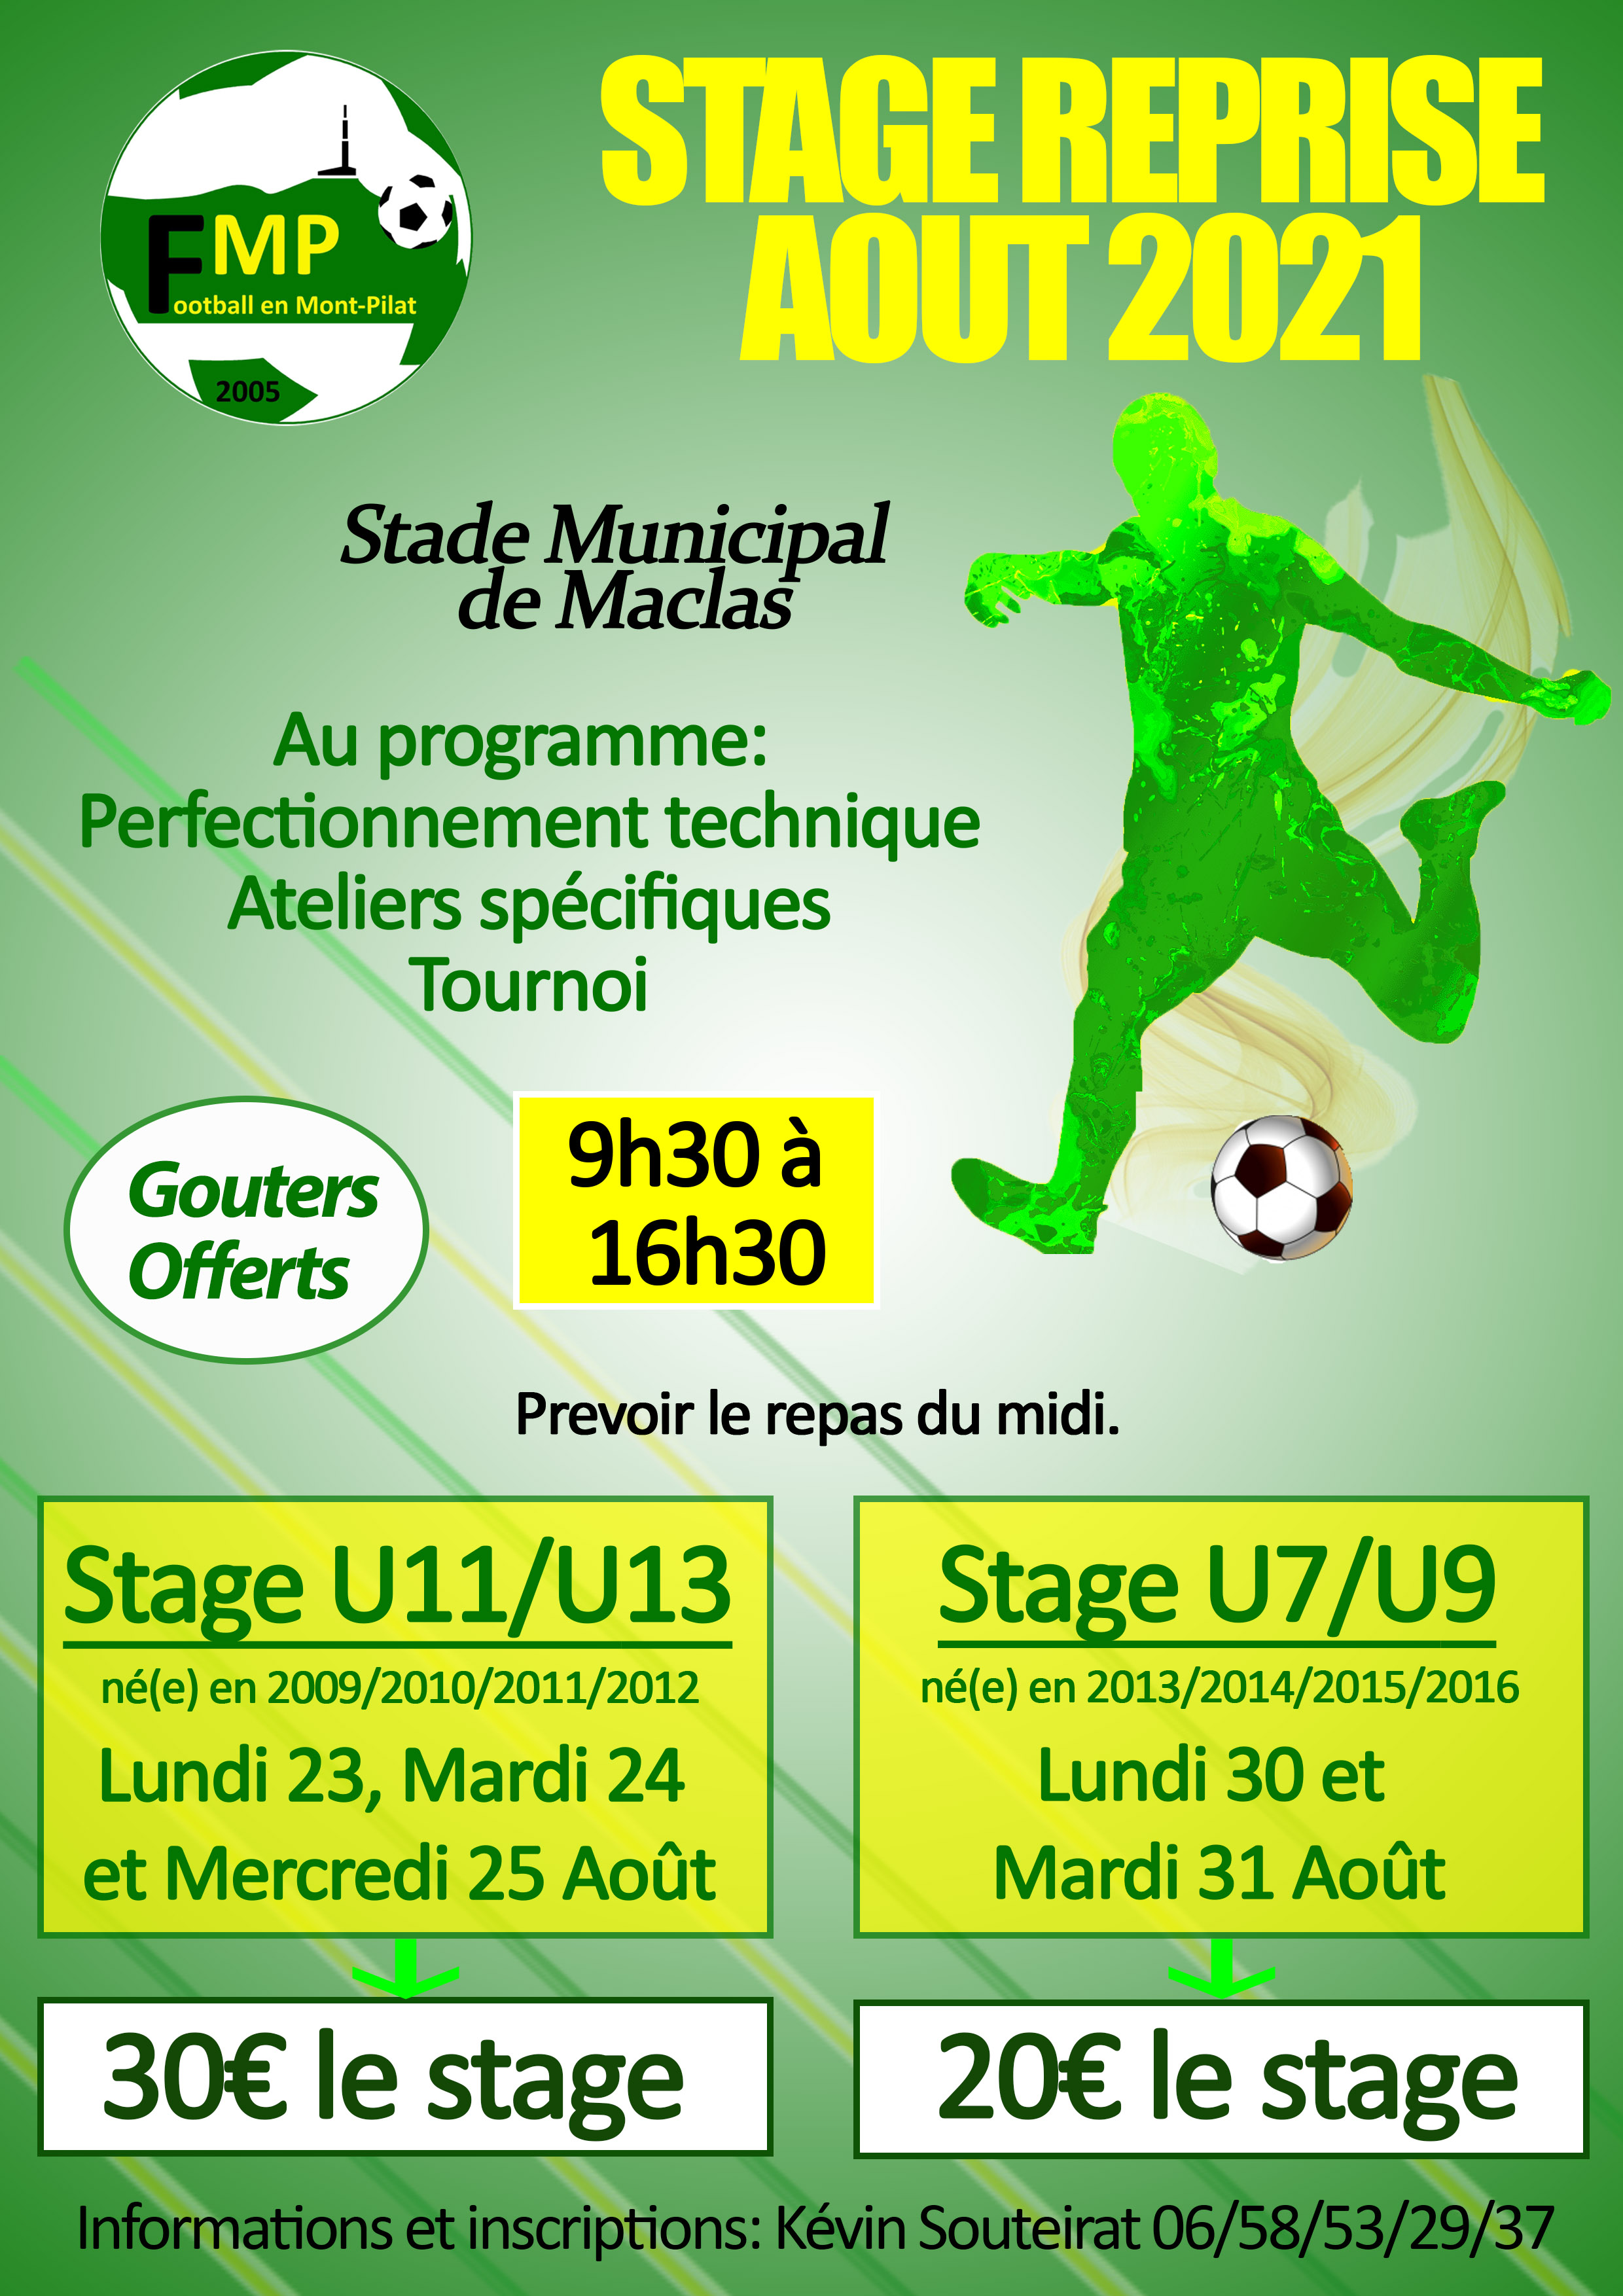 Affiche stage Reprise août 2021.jpg